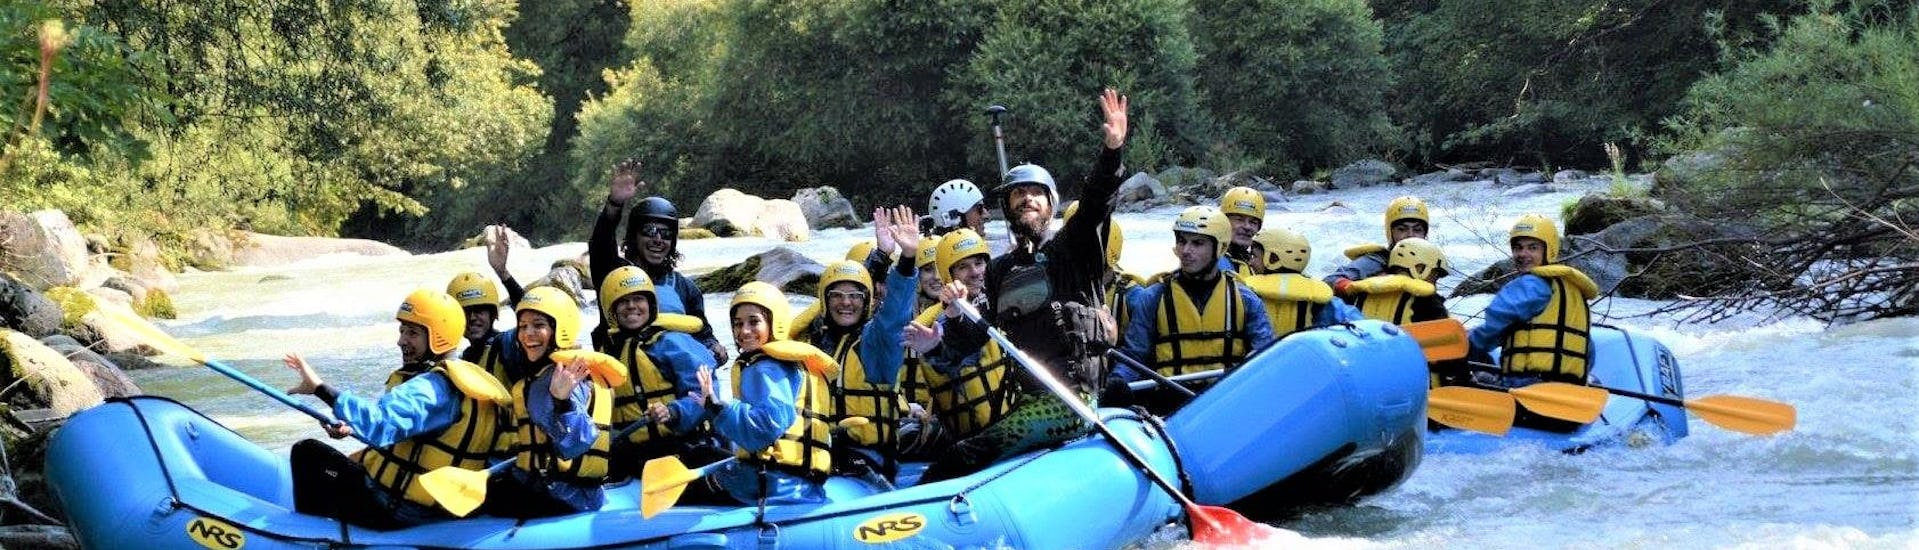 Some participants of the Rafting Rio Claro organized by X Raft Val di Sole. are smiling at the camera.